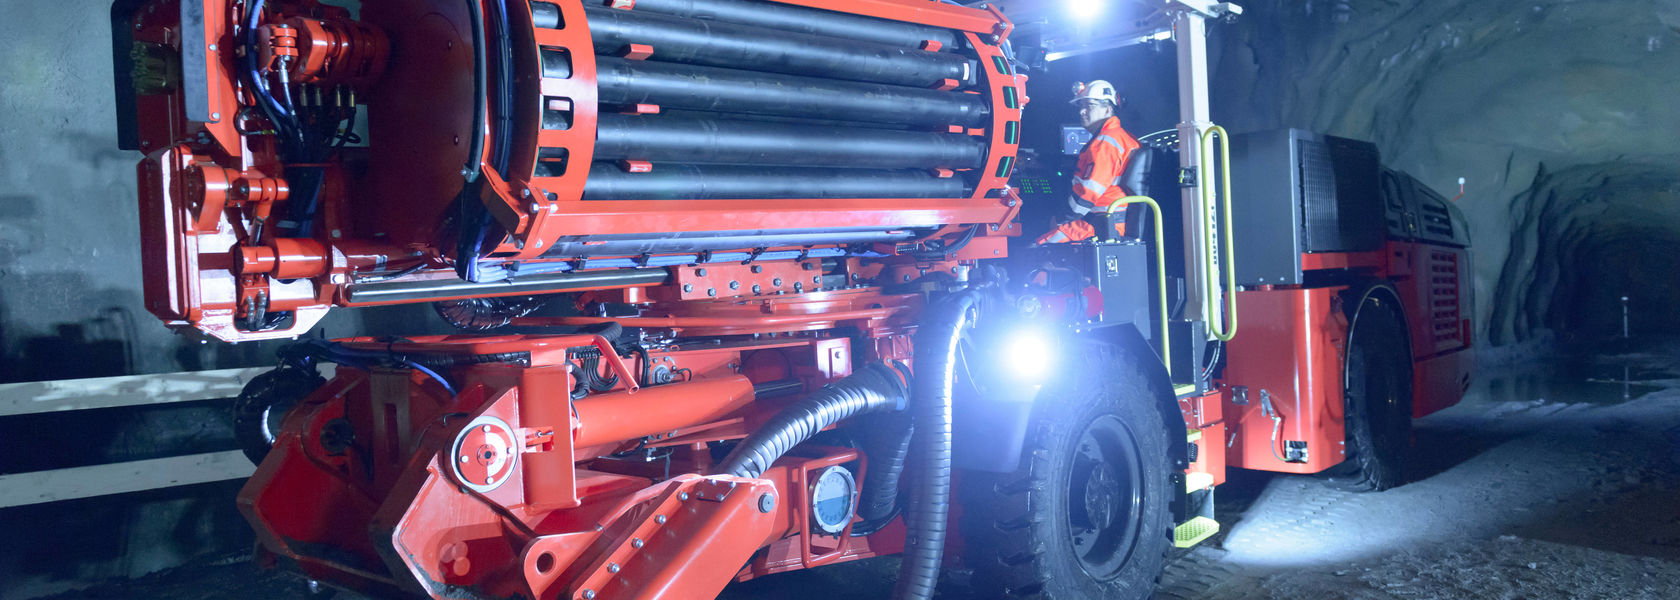 Sandvik raises bar with drill